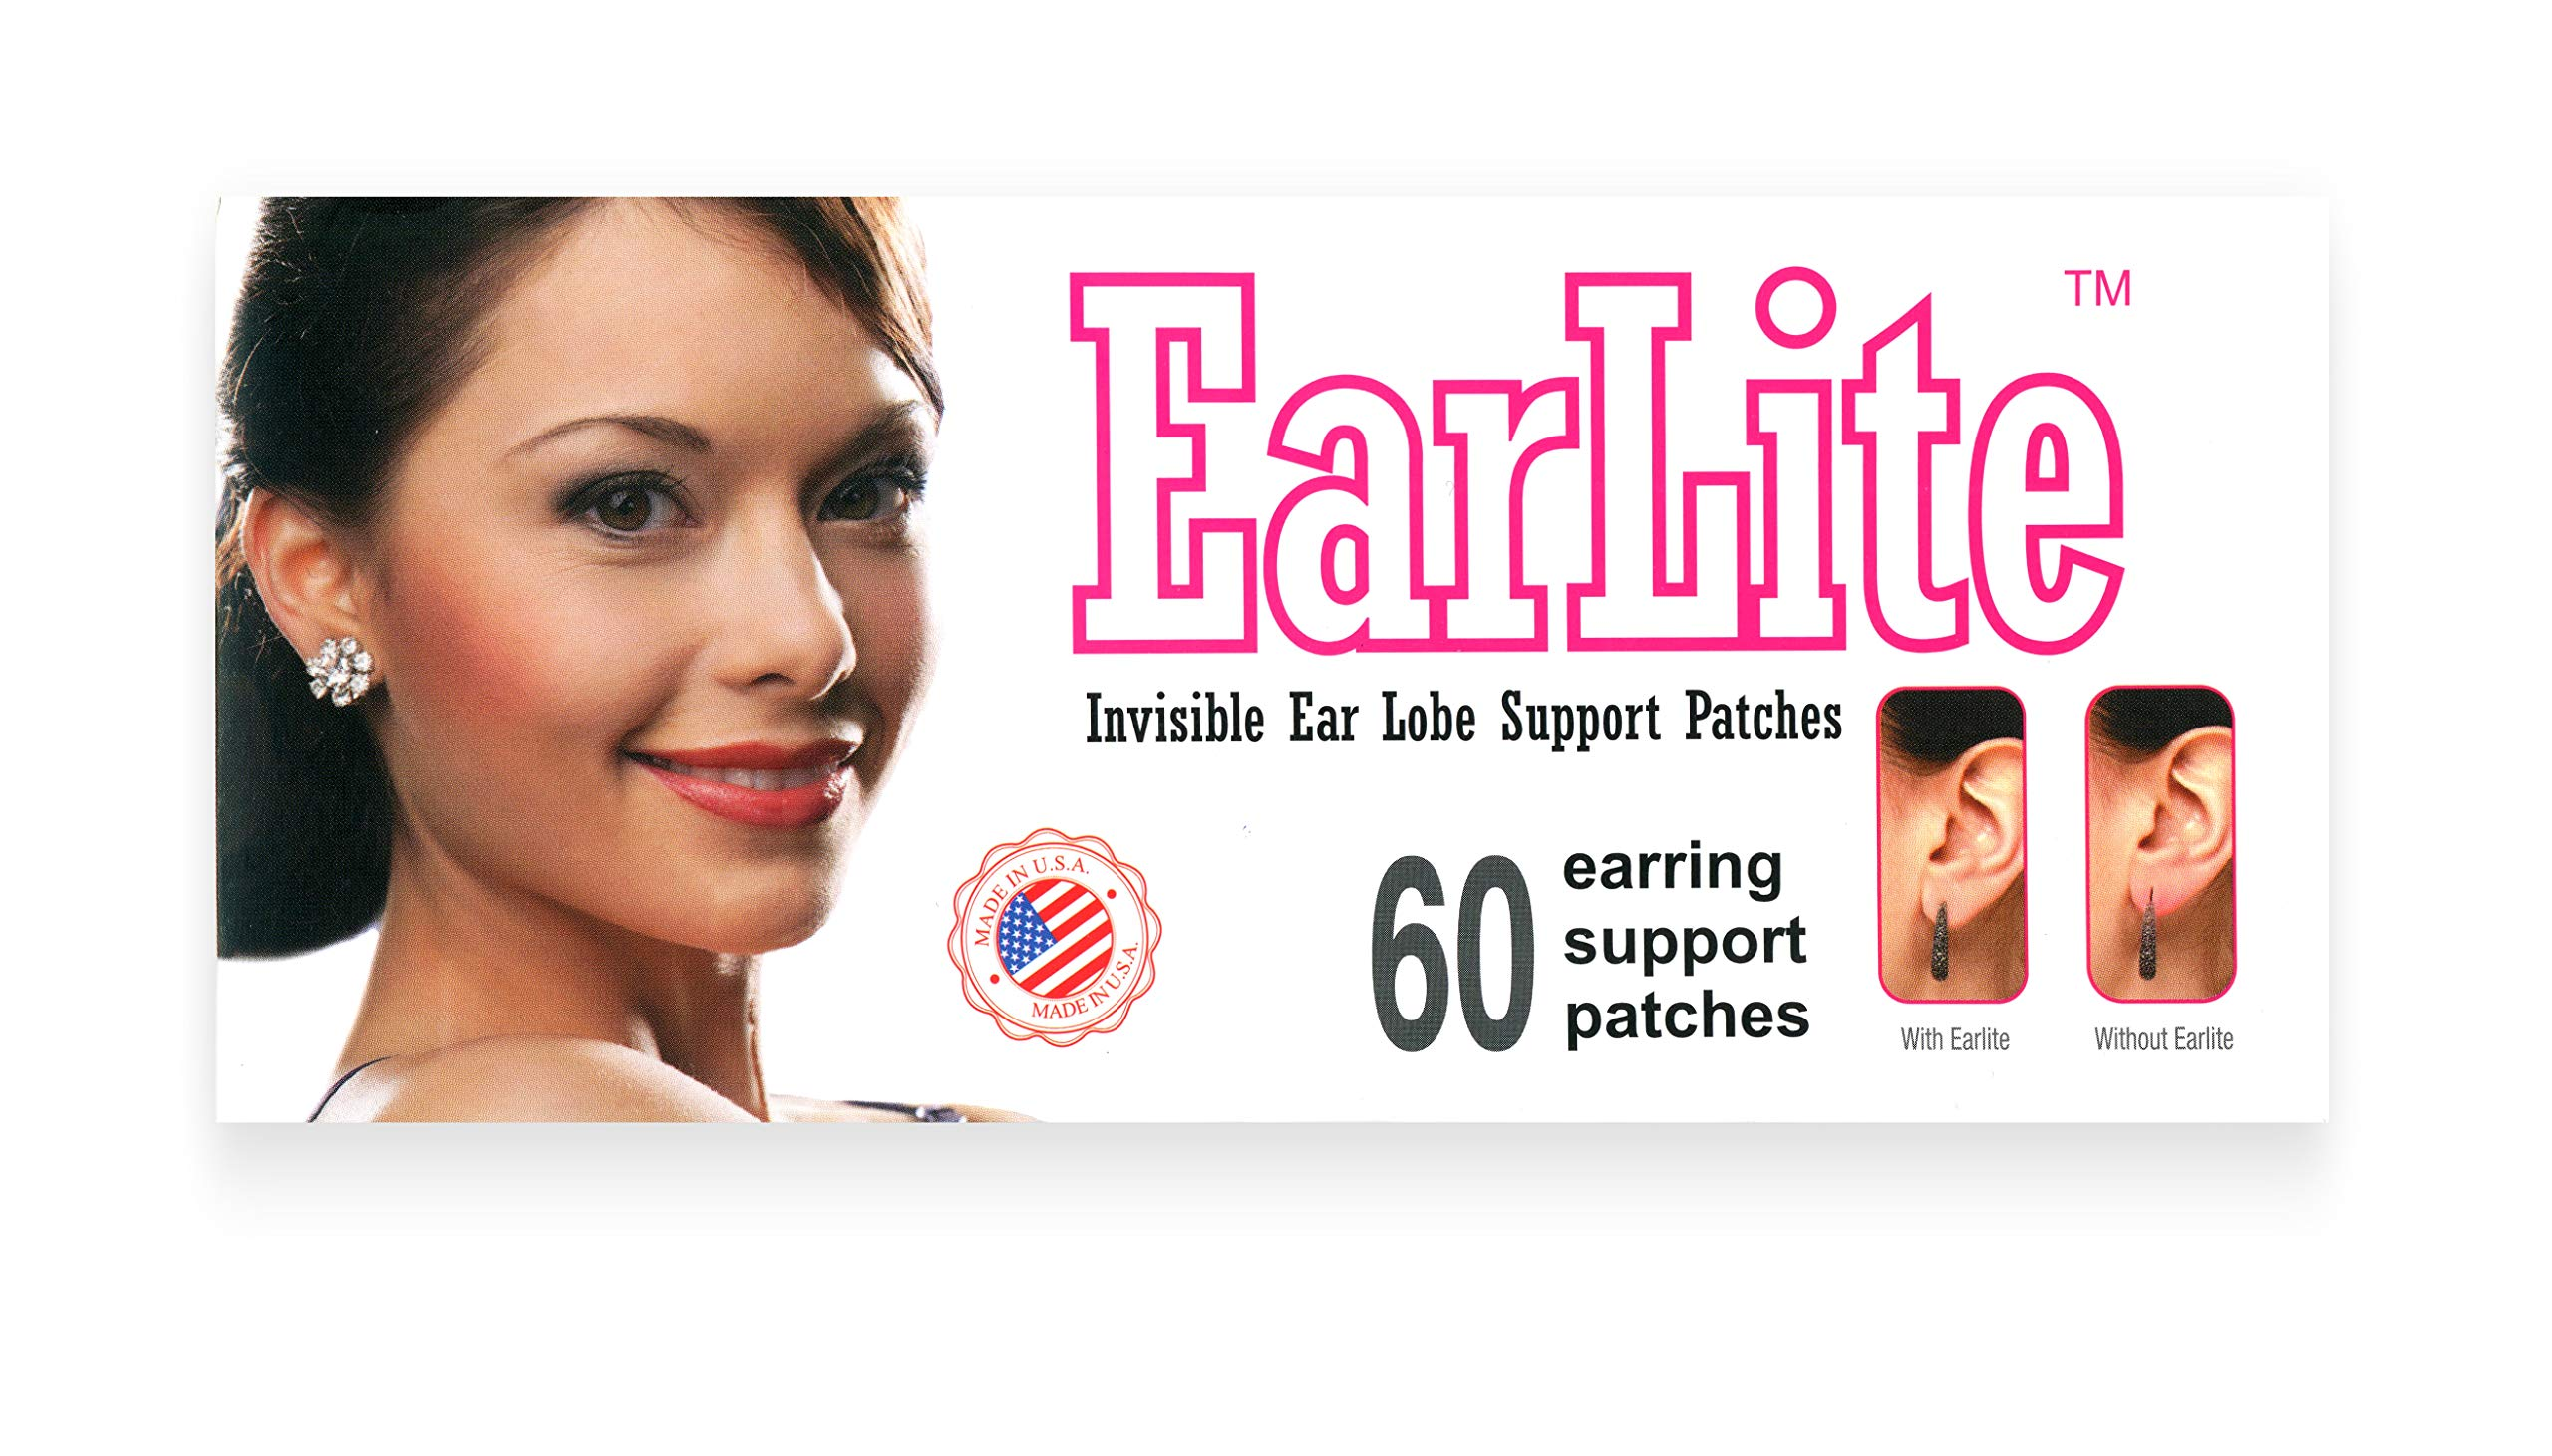 EarLite 60 PATCHES Invisible Earring Ear-Lobe Support Patches Waterproof Patches in ZipLock Pouch